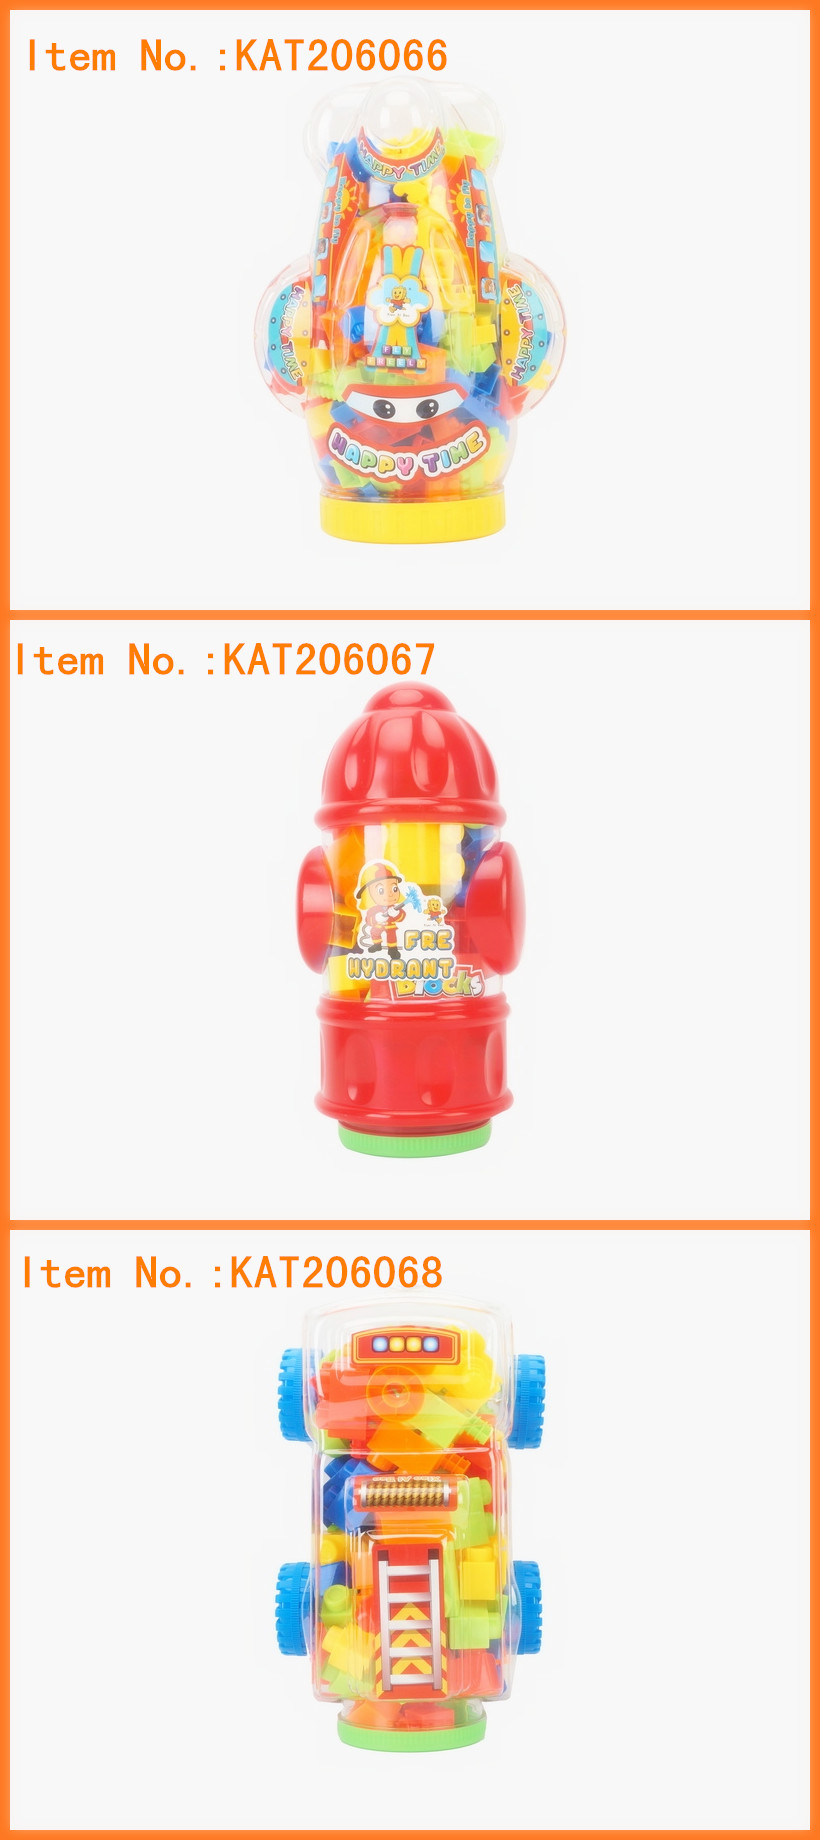 2019 New Educational Toy Magnetic Plastic Building Blocks Toys For Kids